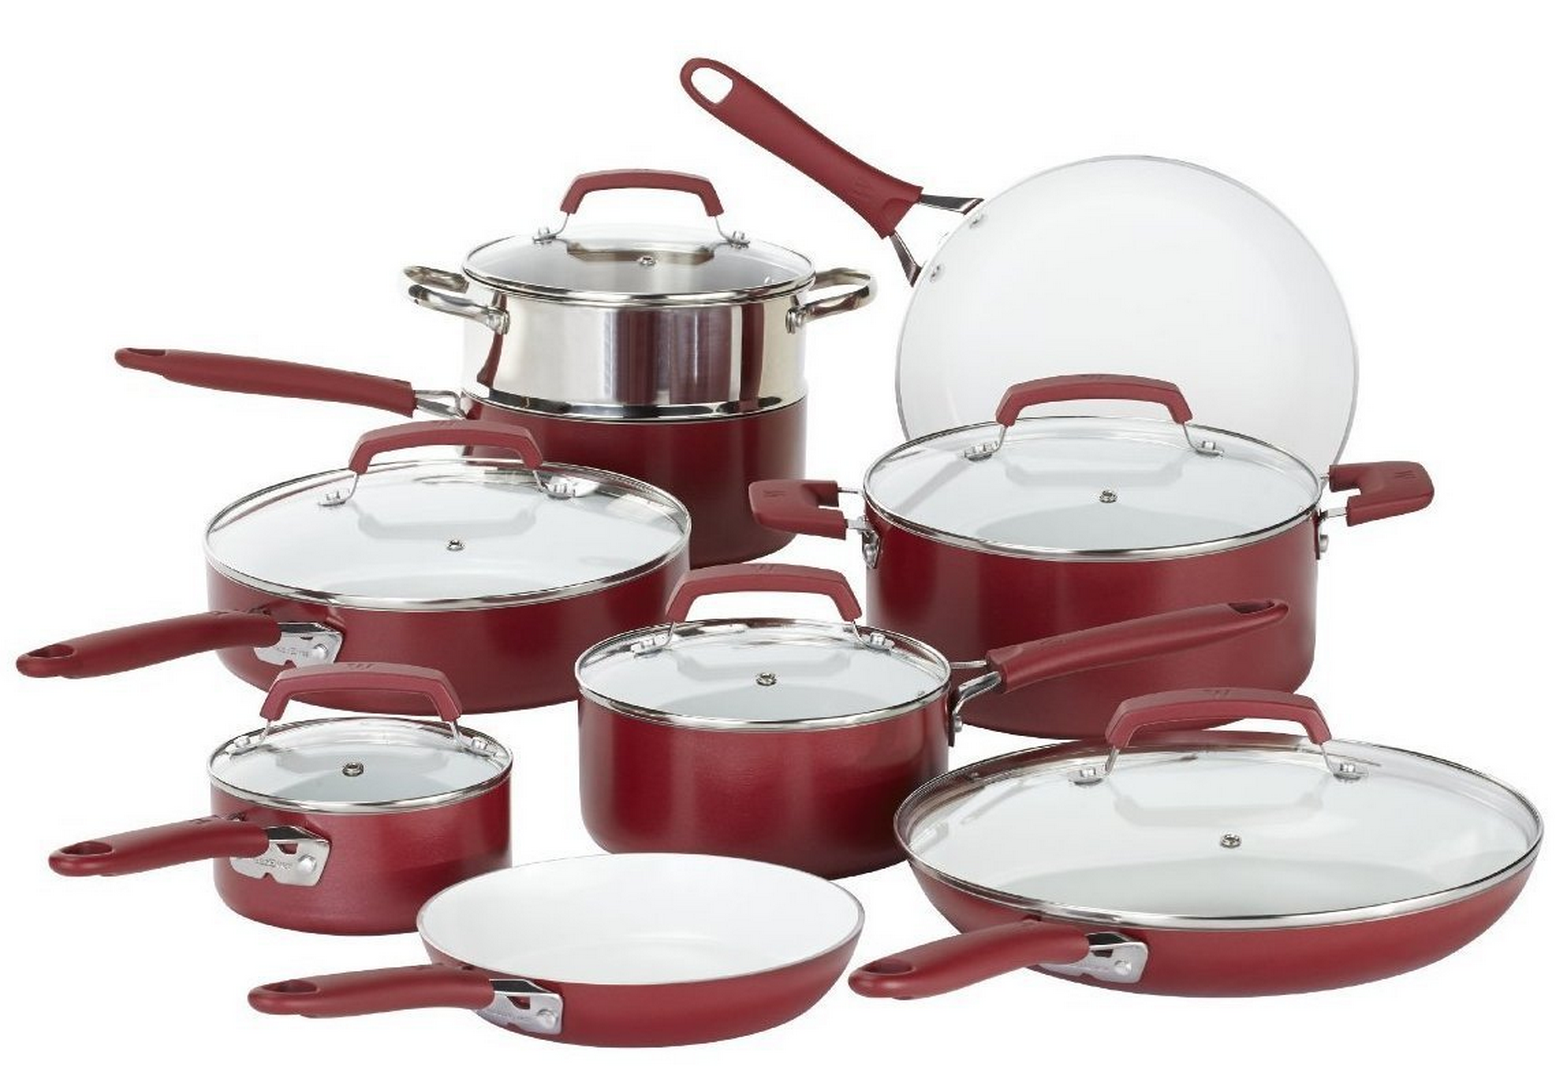 Amazon Lightning Deal: WearEver 15 Piece Cookware Set Only $73.99 + FREE One Day Shipping!